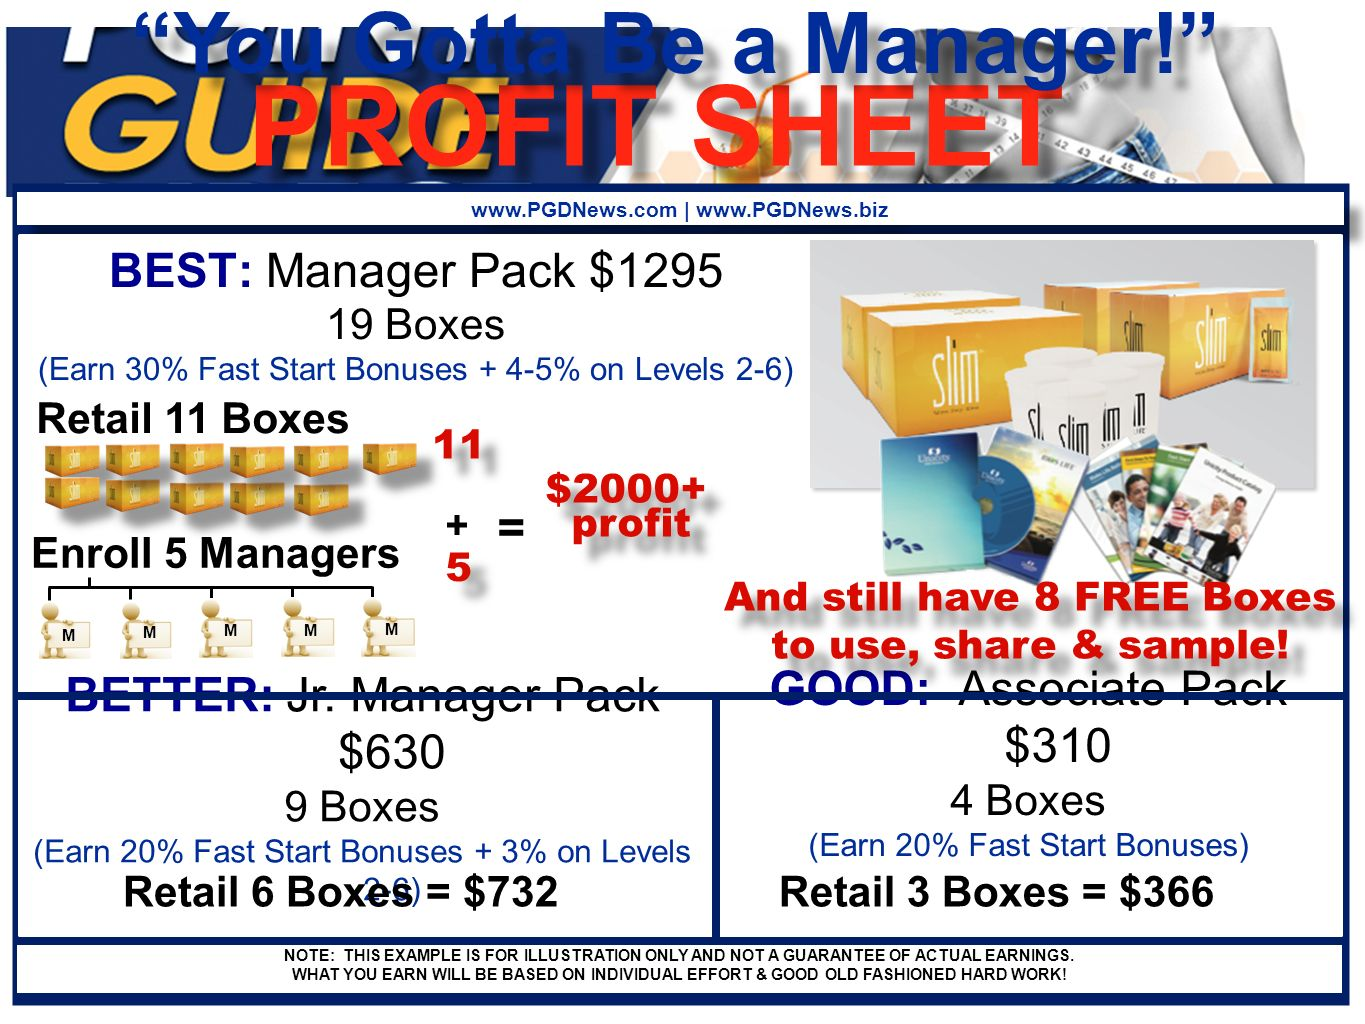 PROFIT SHEET You Gotta Be a Manager! www.PGDNews.com | www.PGDNews.biz BETTER: Jr. Manager Pack $630 9 Boxes (Earn 20% Fast Start Bonuses + 3% on Leve